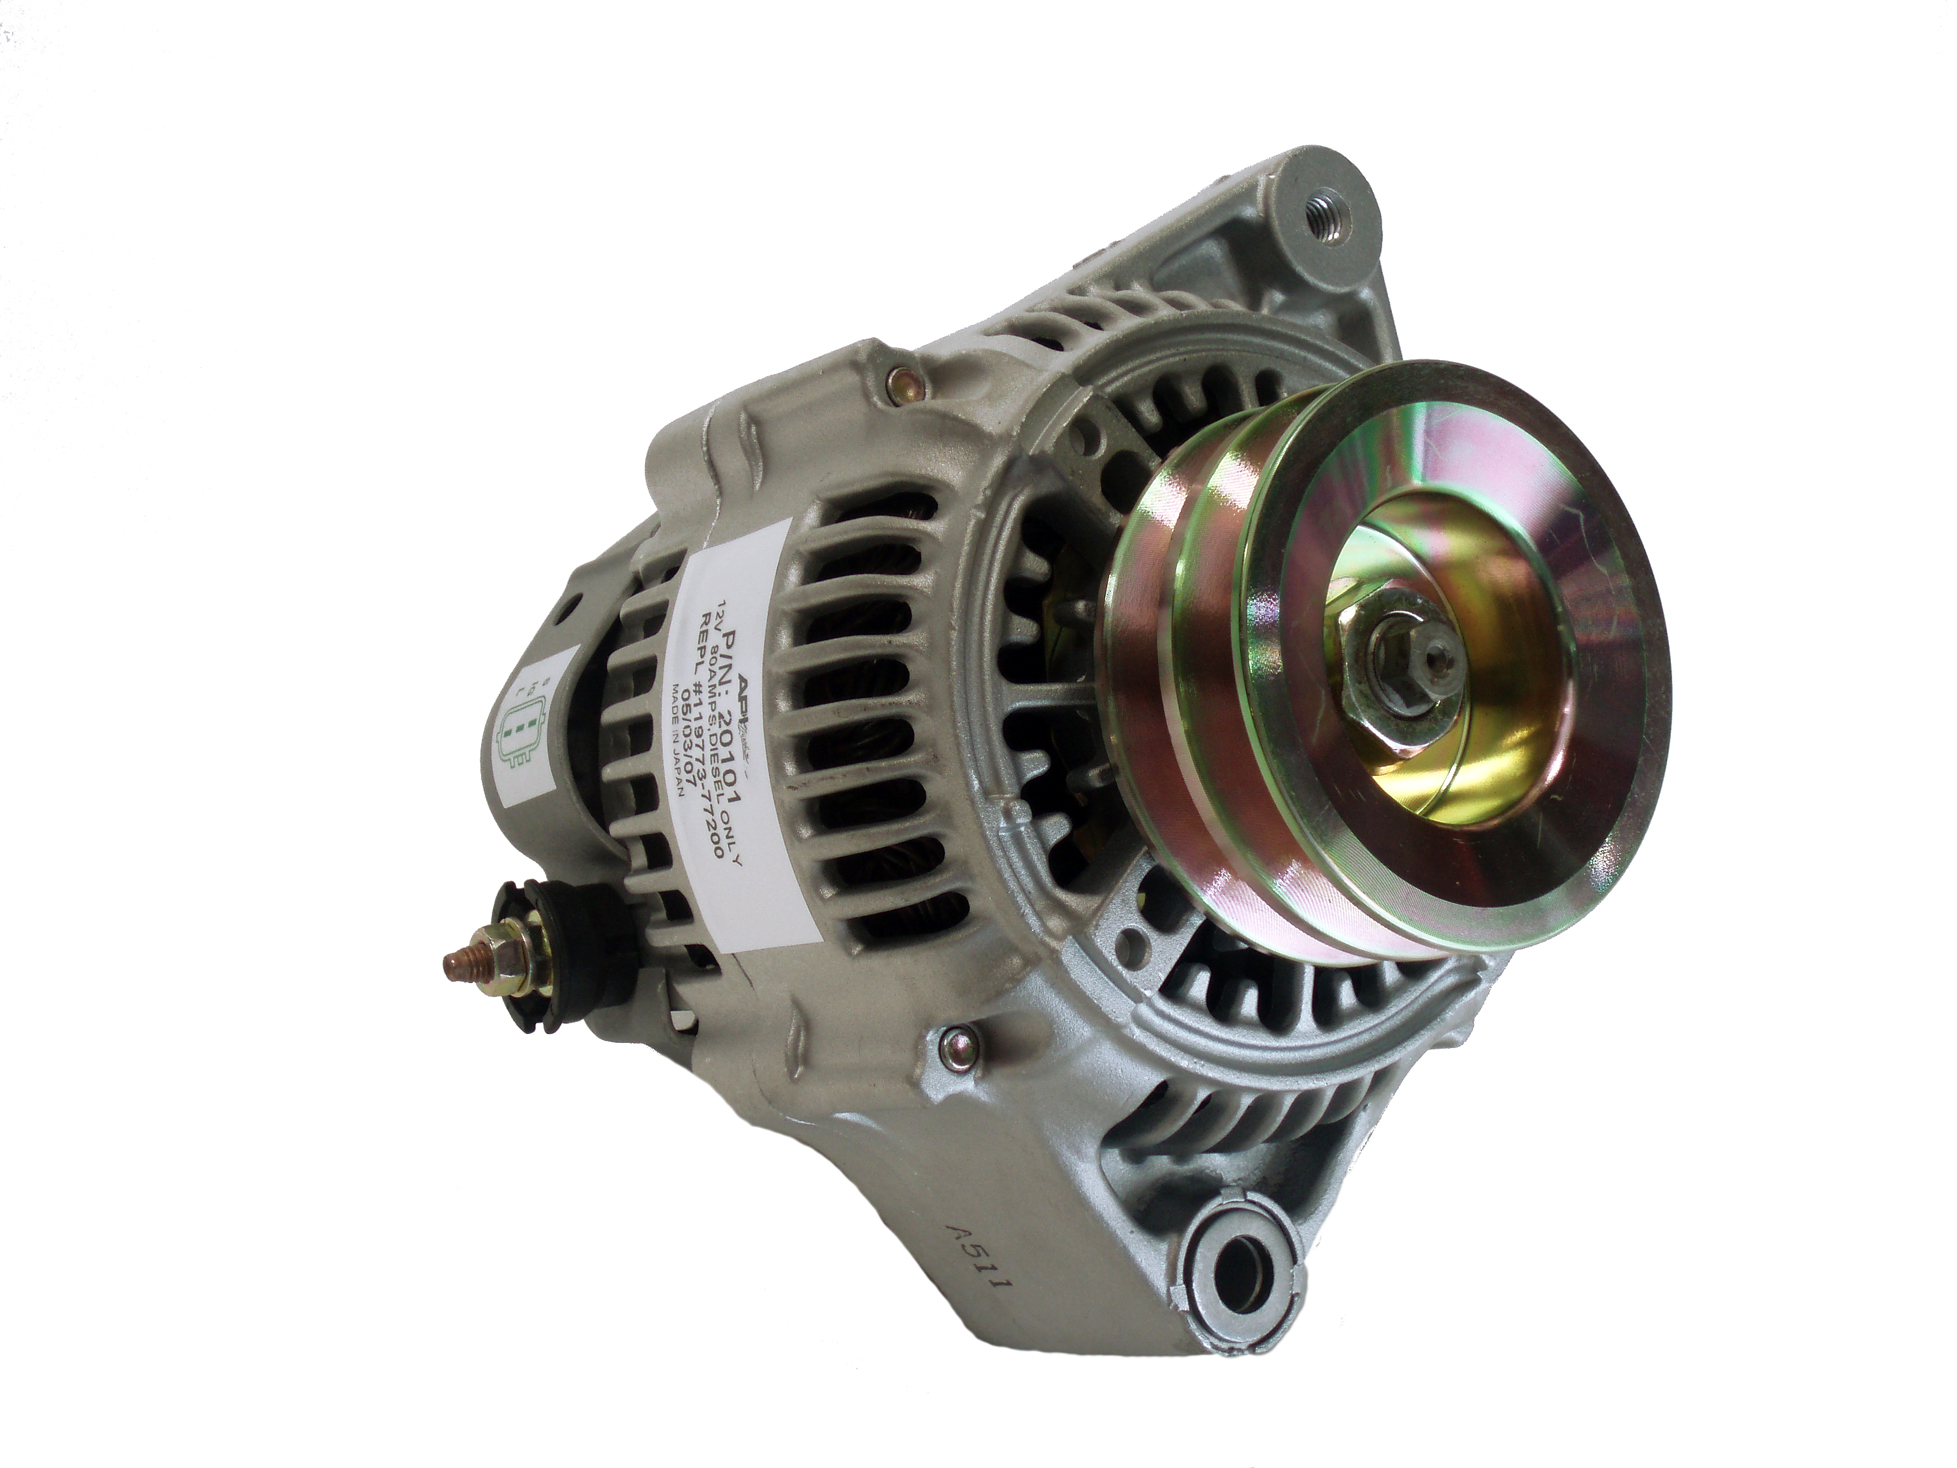 hight resolution of yanmar 6lp 12v 80 amp denso style alternator double pulley rplc yanmar 119773 77200 sterndrive engineering